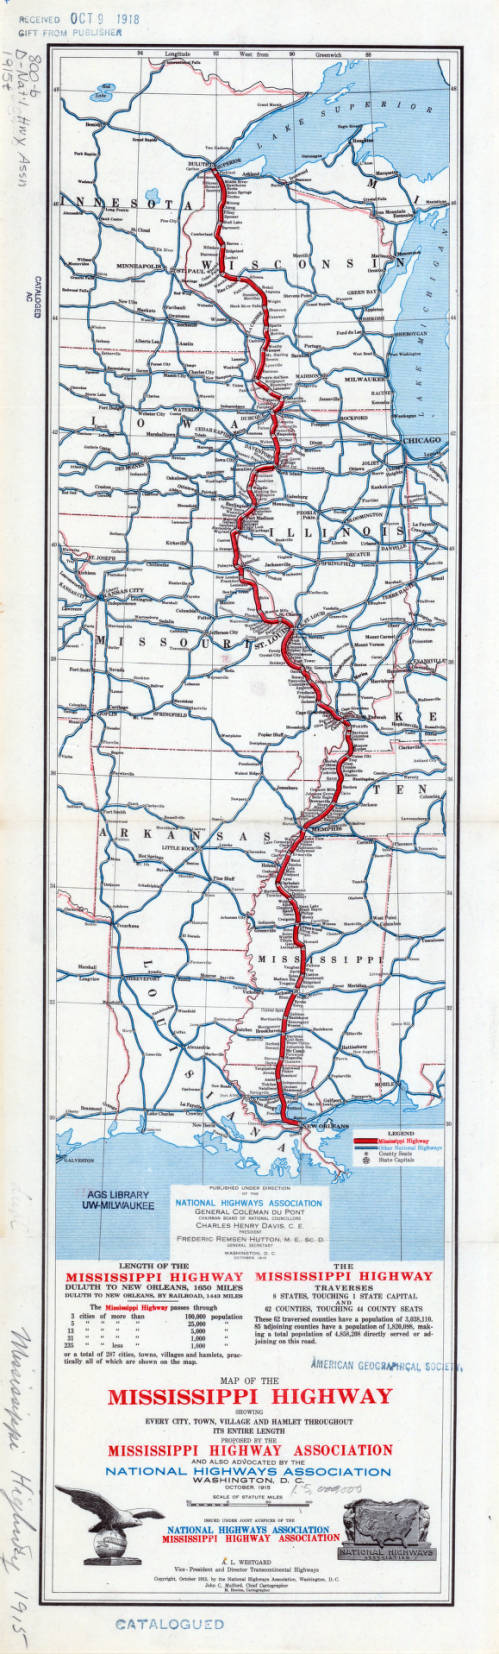 Mississippi Highway 1915 - American Geographical Society ...